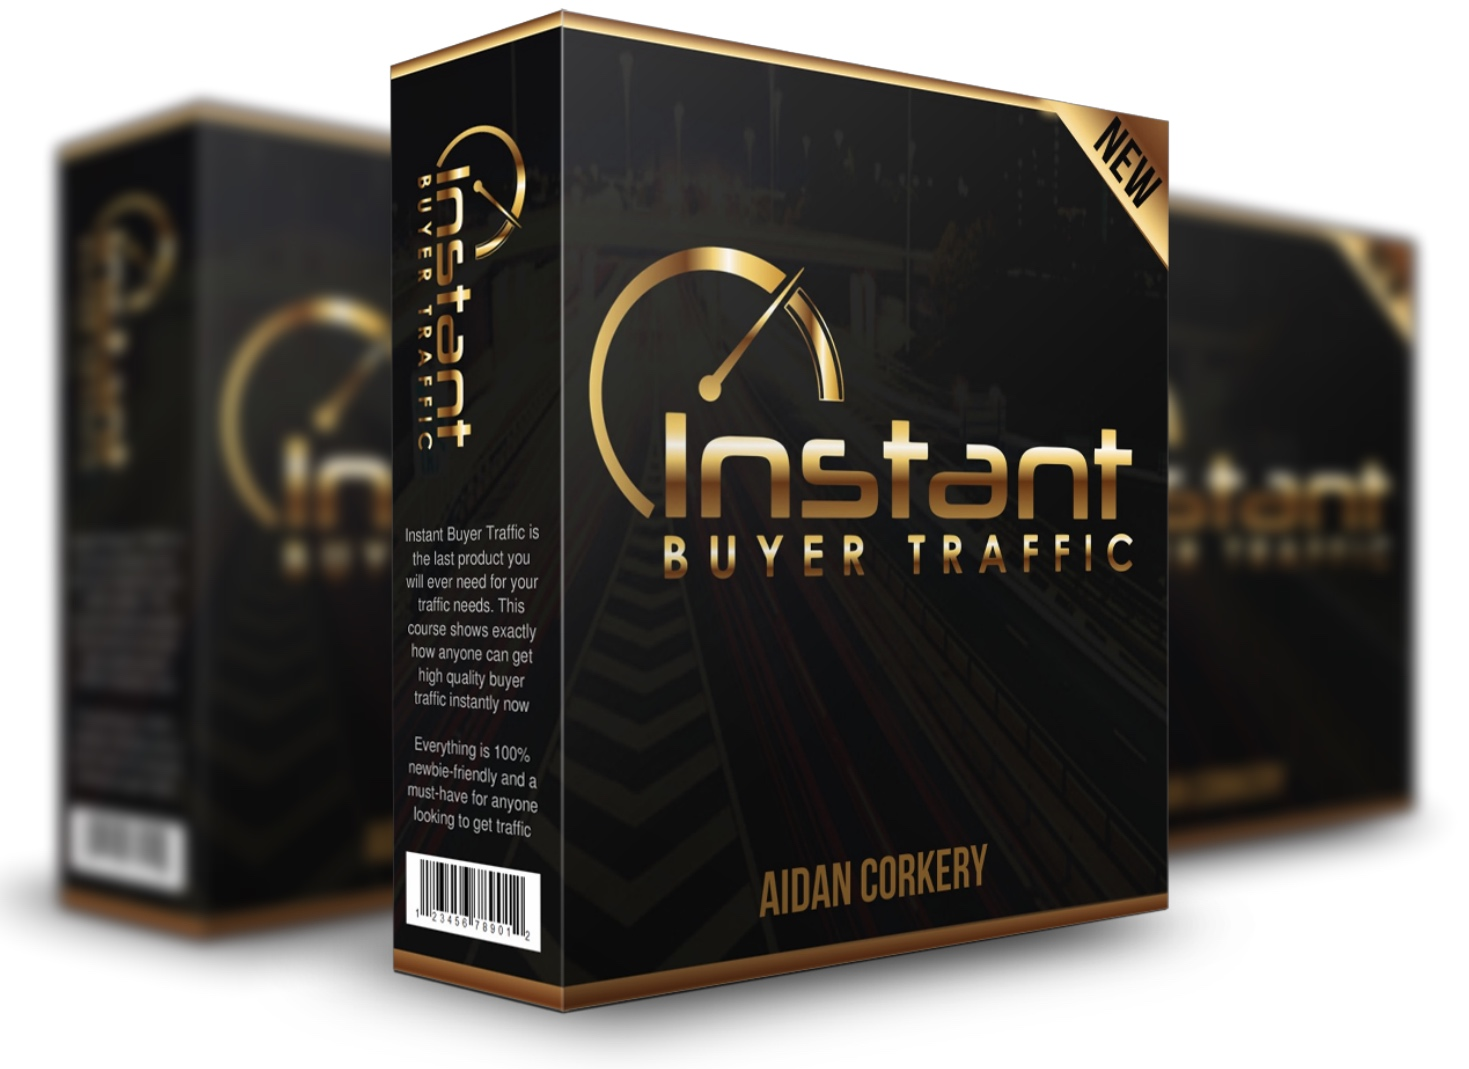 08 Instant Buyer Traffic